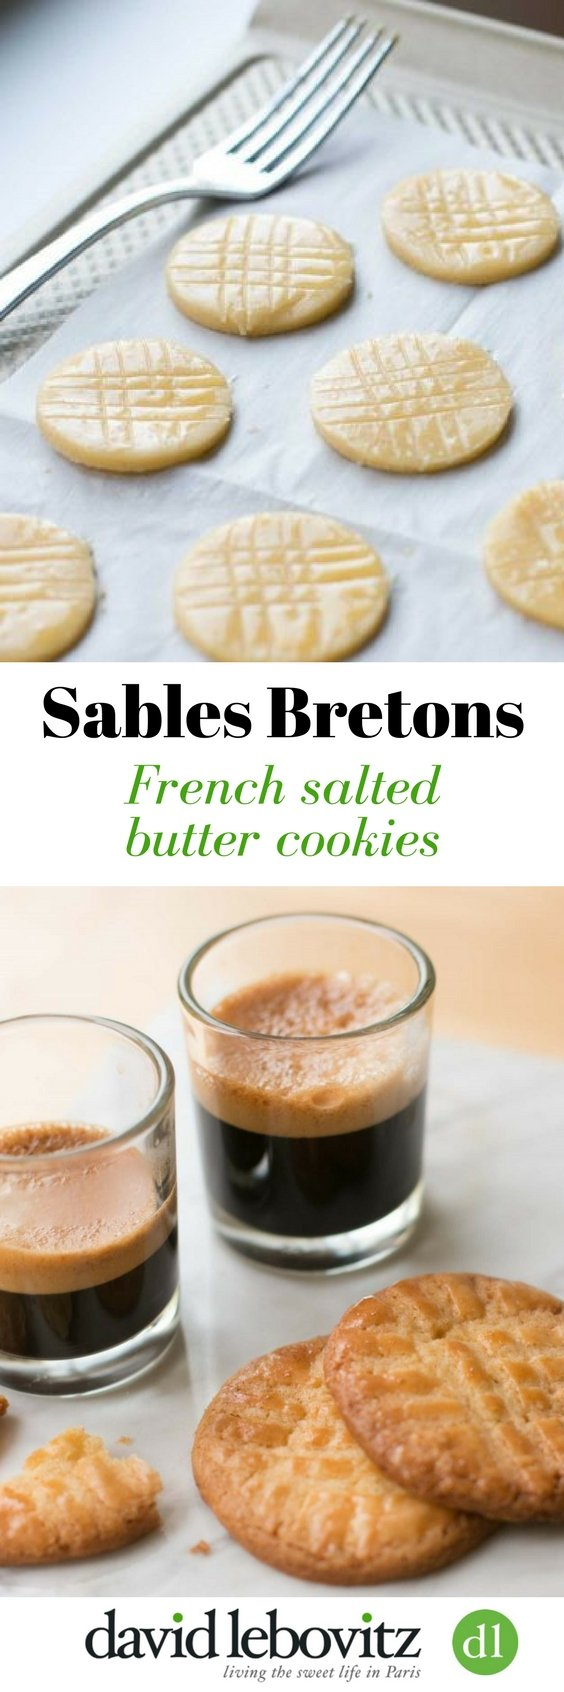 Sablé Bretons: French salted butter cookies